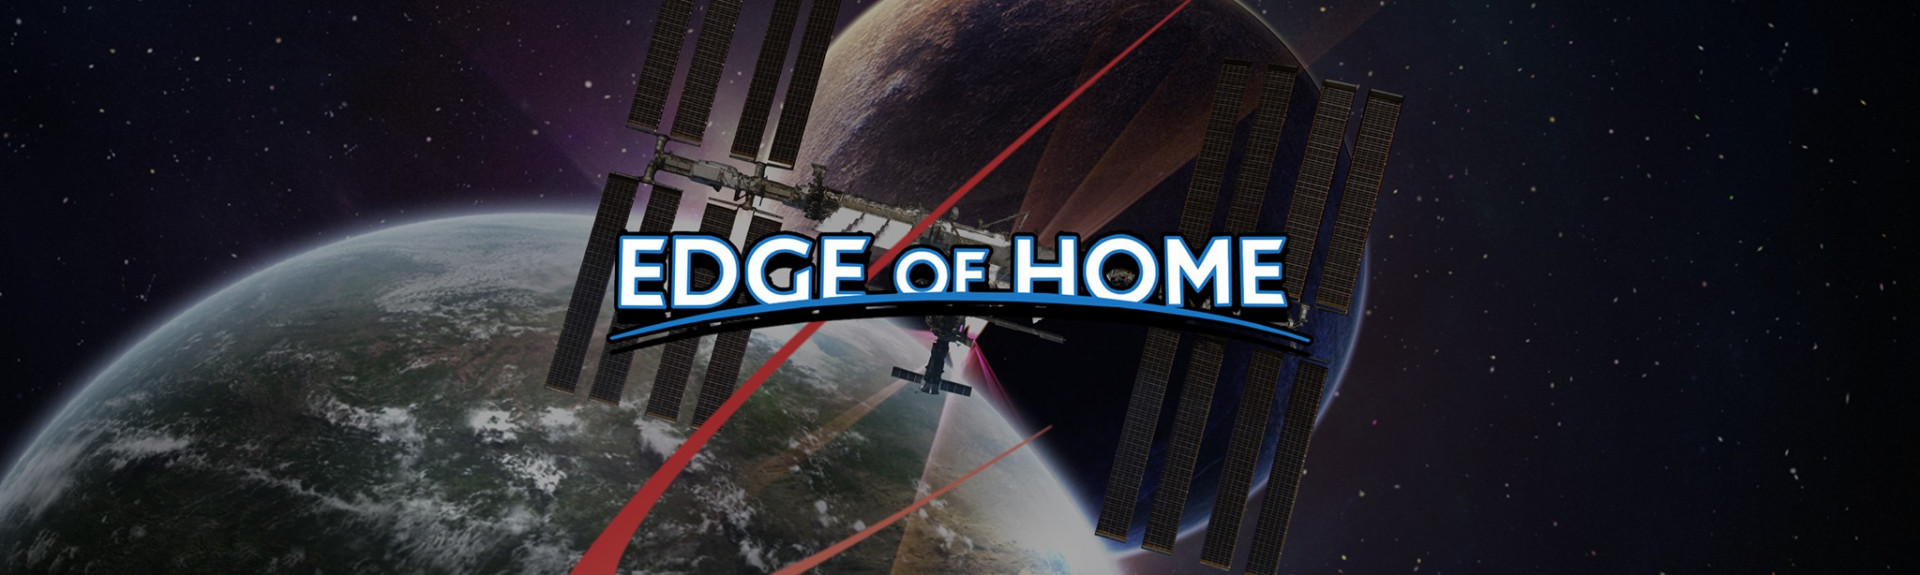 Edge of Home